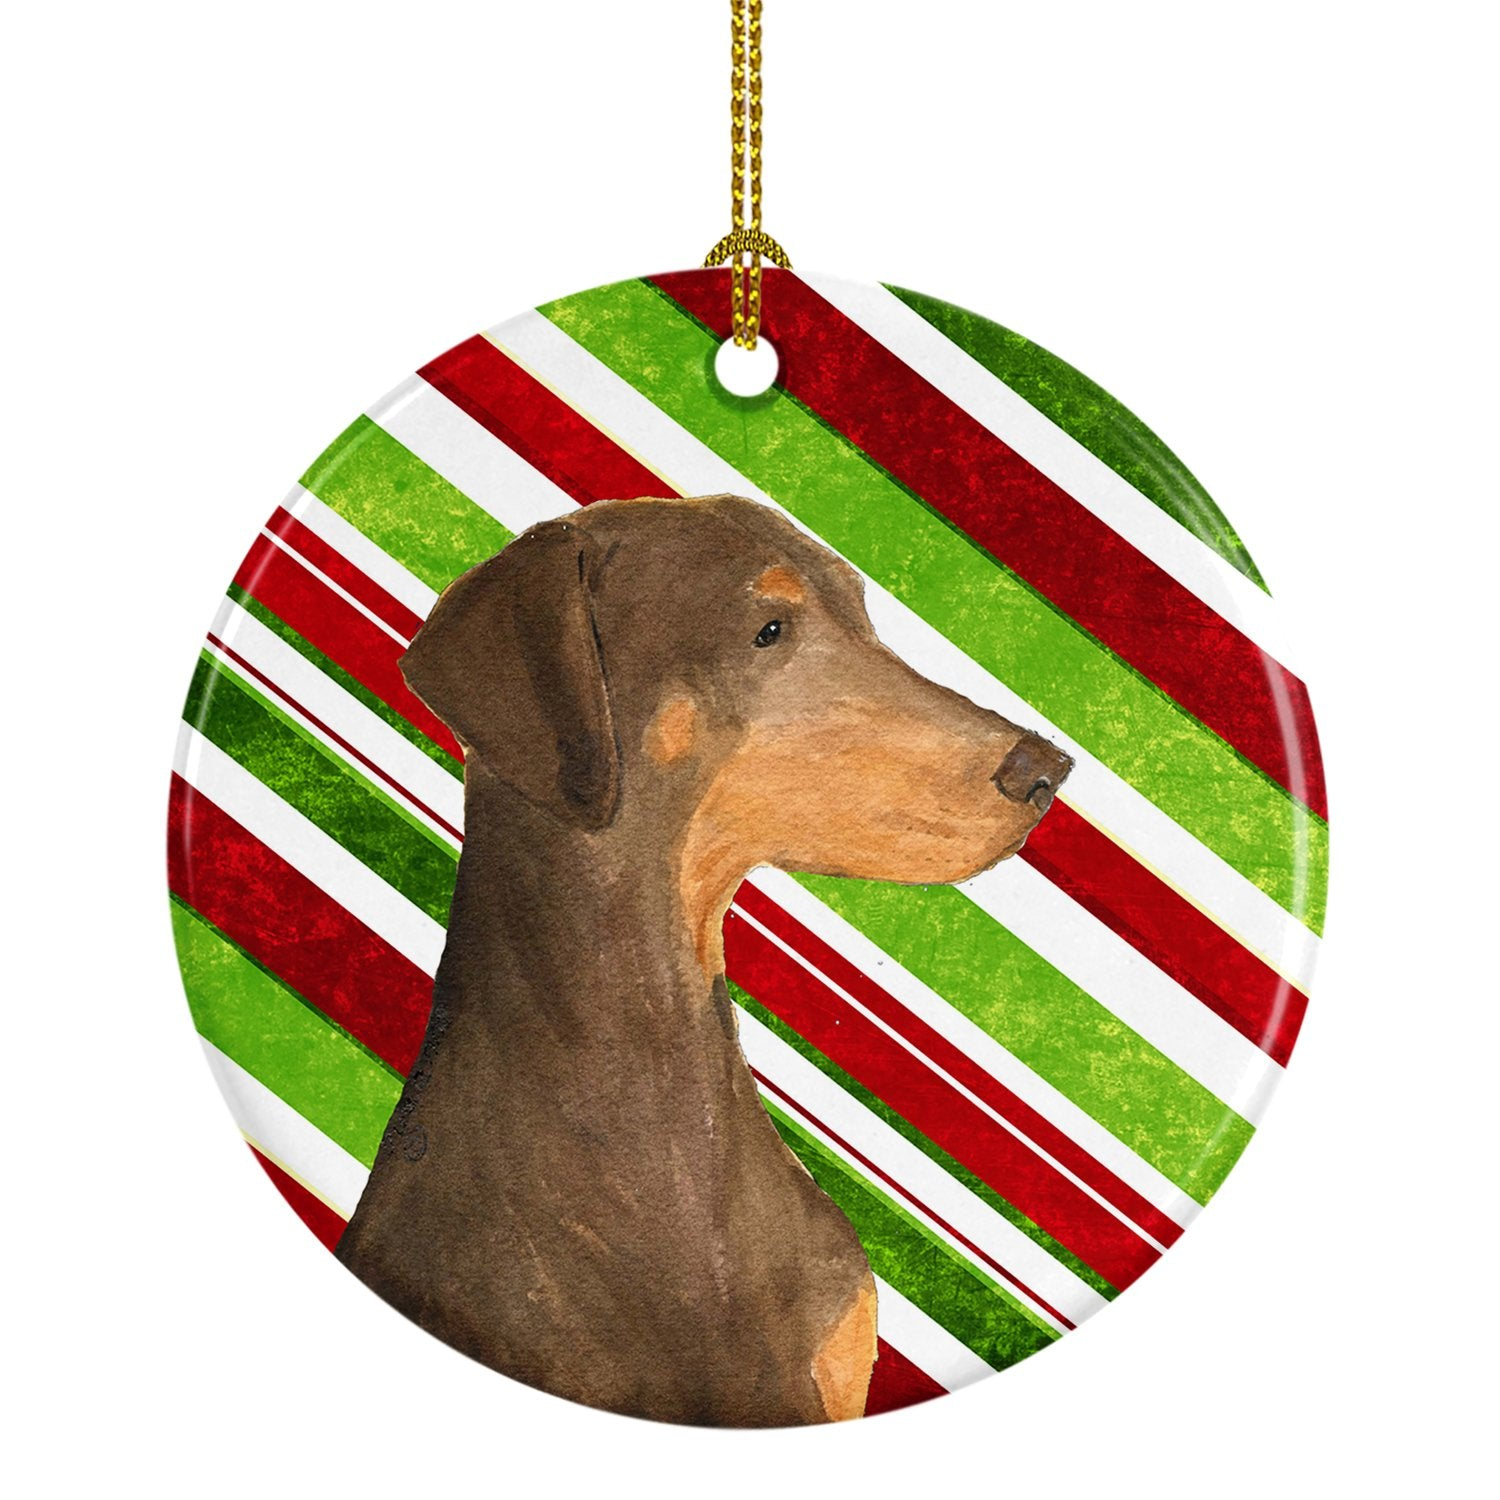 Doberman Candy Cane Holiday Christmas Ceramic Ornament SS4548 by Caroline's Treasures